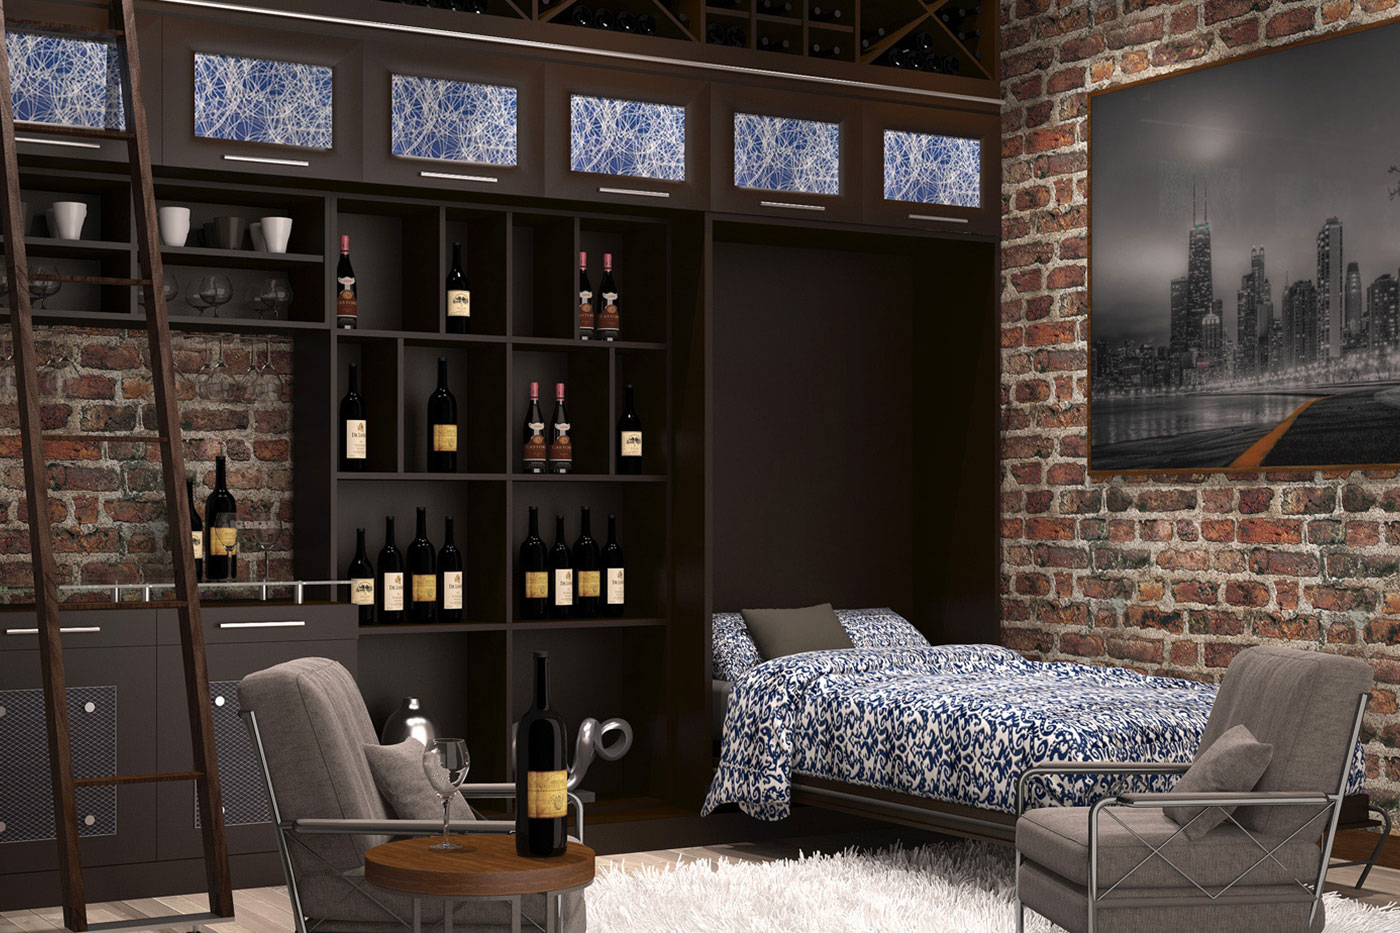 Urban Wall Bed And Wine Bar ...